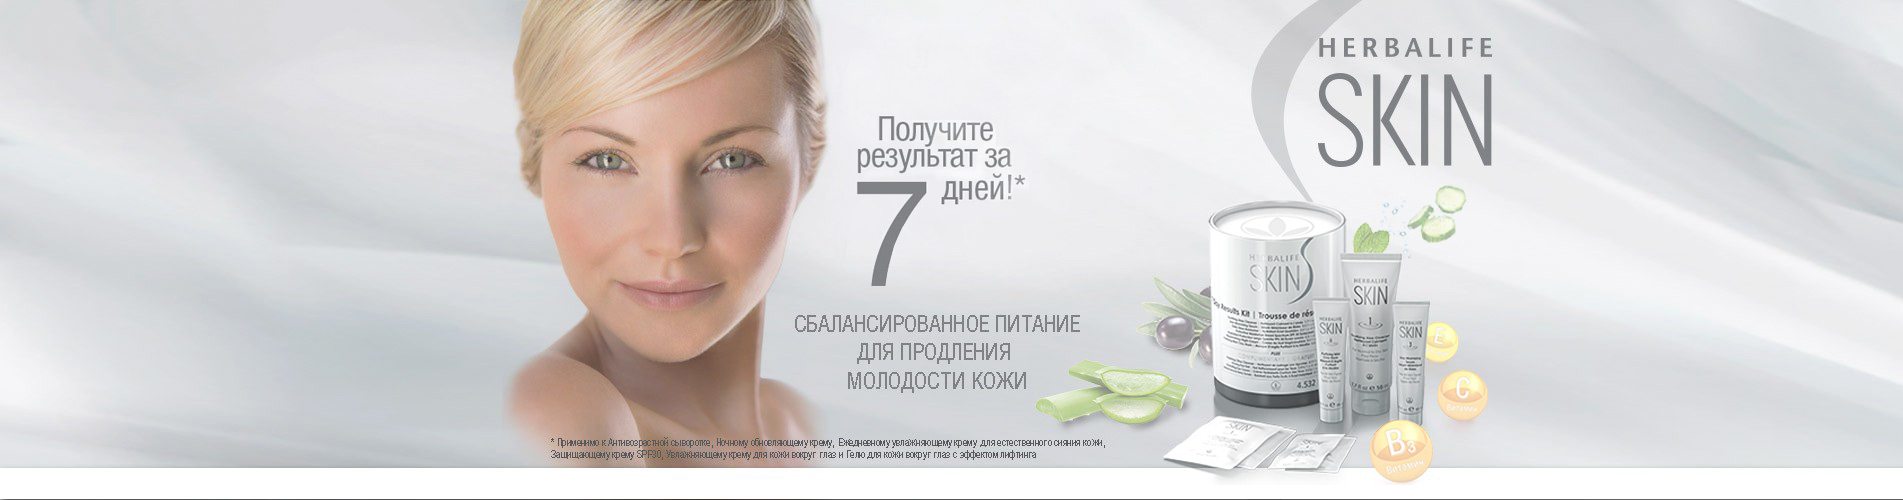 herbalife-skin-7-days-program